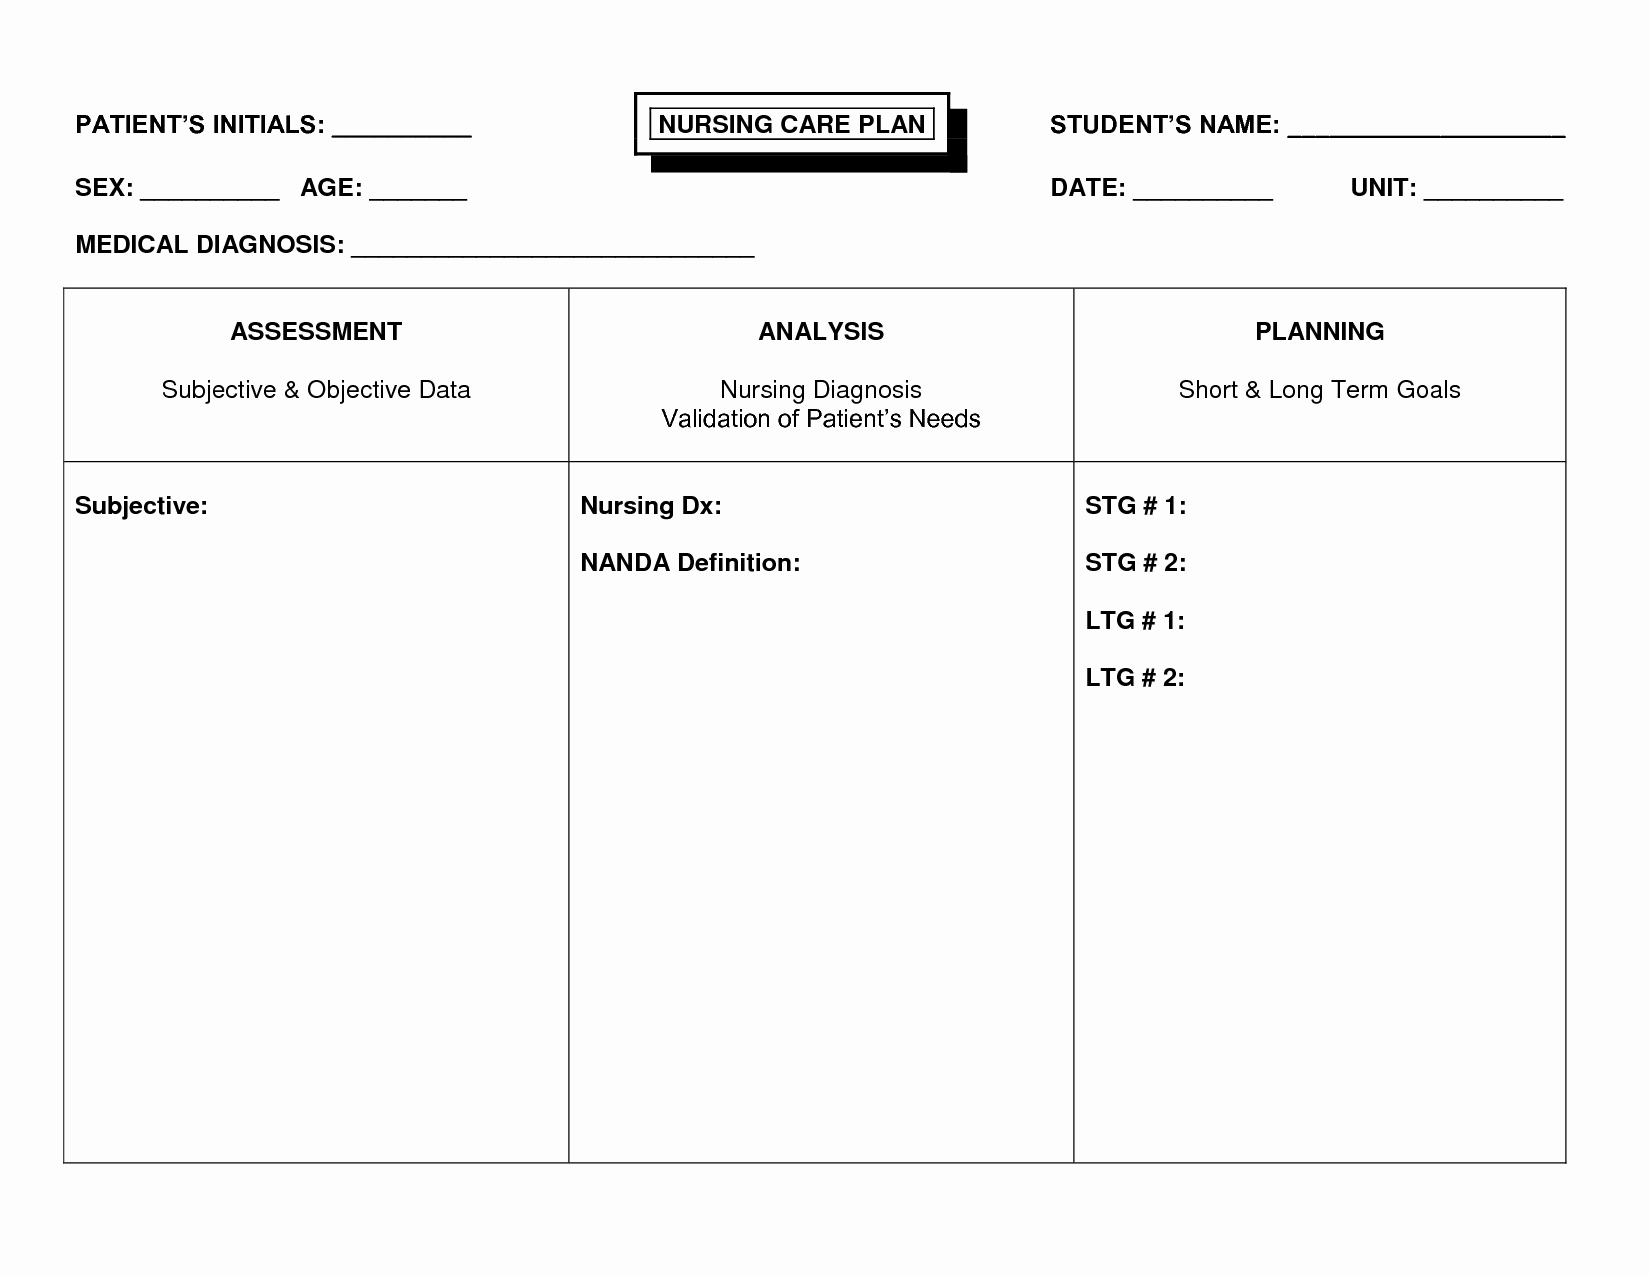 Home Health Care Plan Template Awesome Unique Nursing Home Care Plans 8 Nursing Care Plan